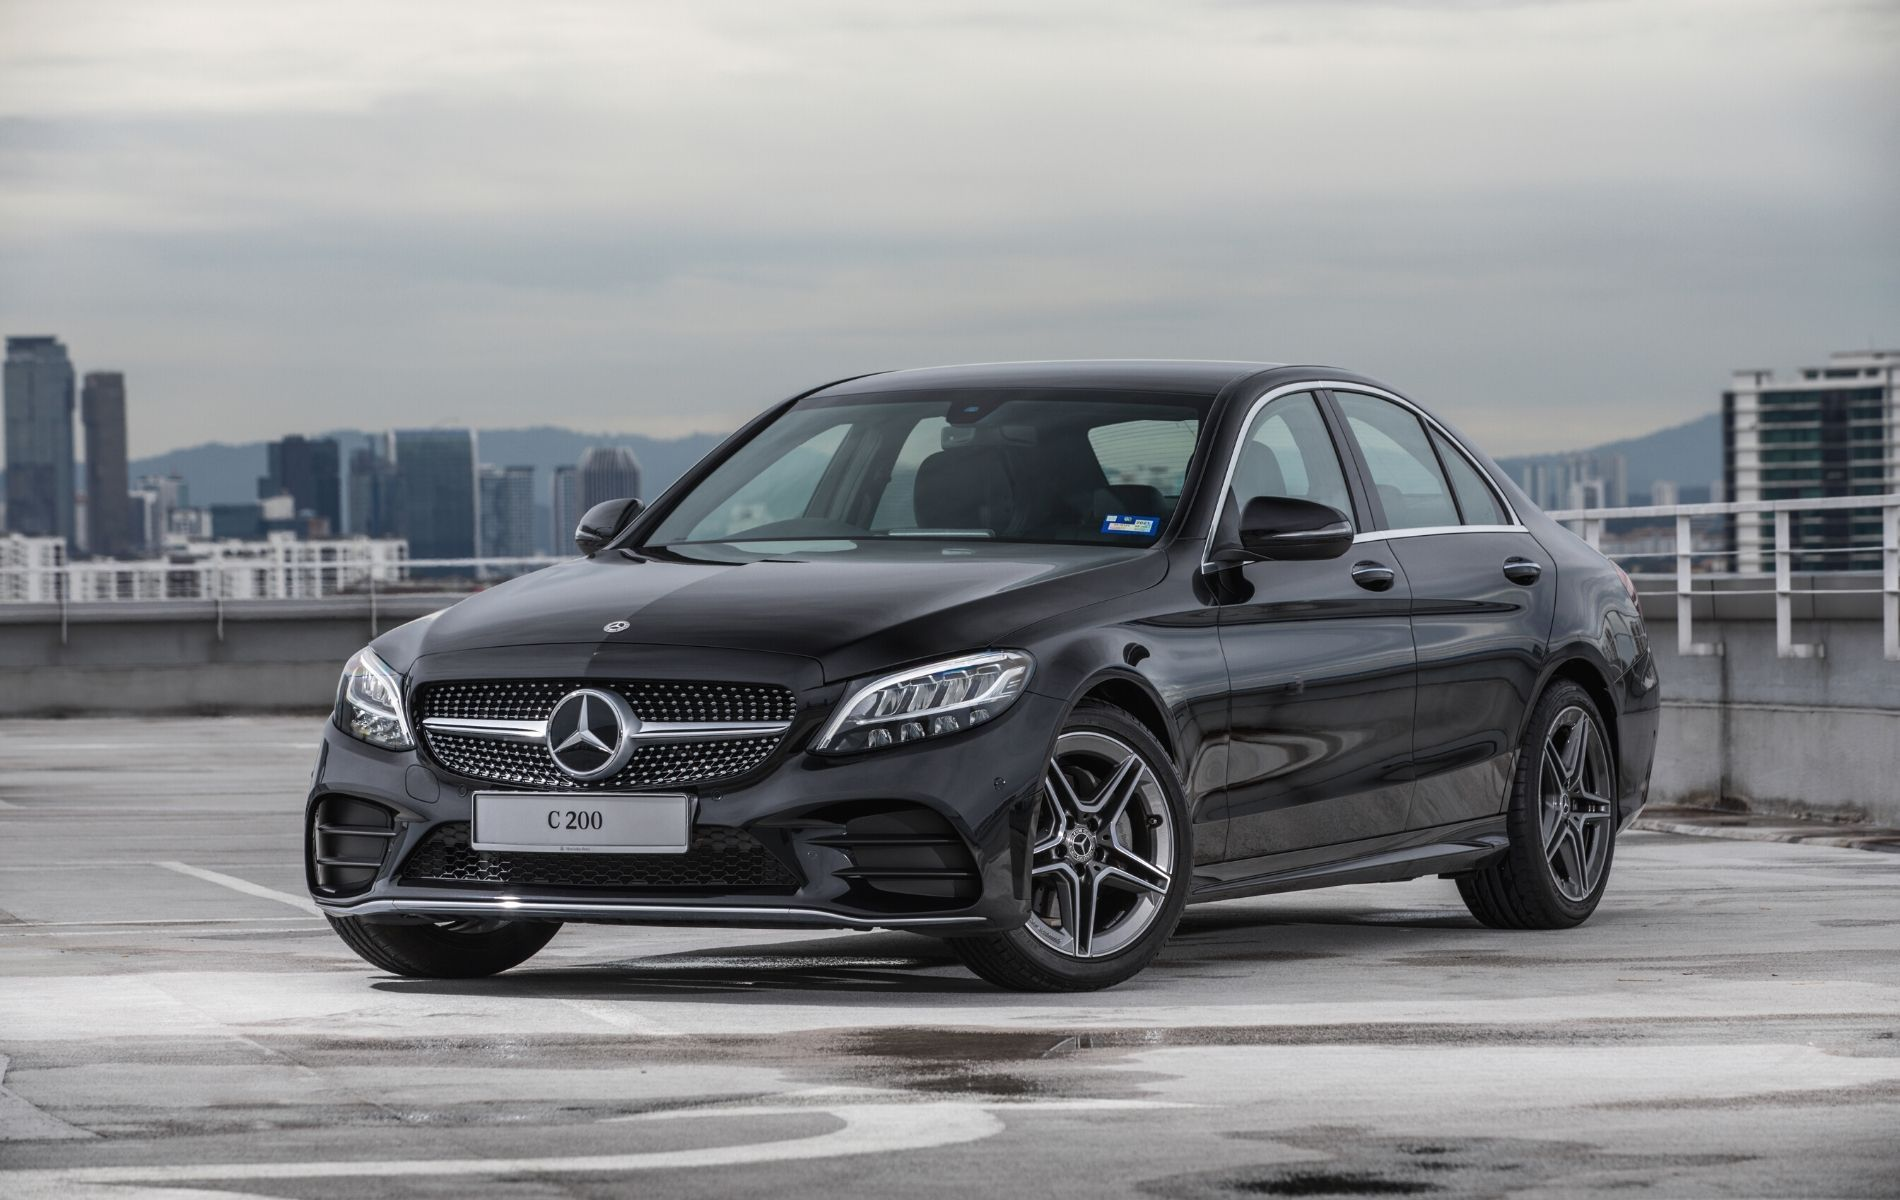 The new C-Class C200 with AMG Line